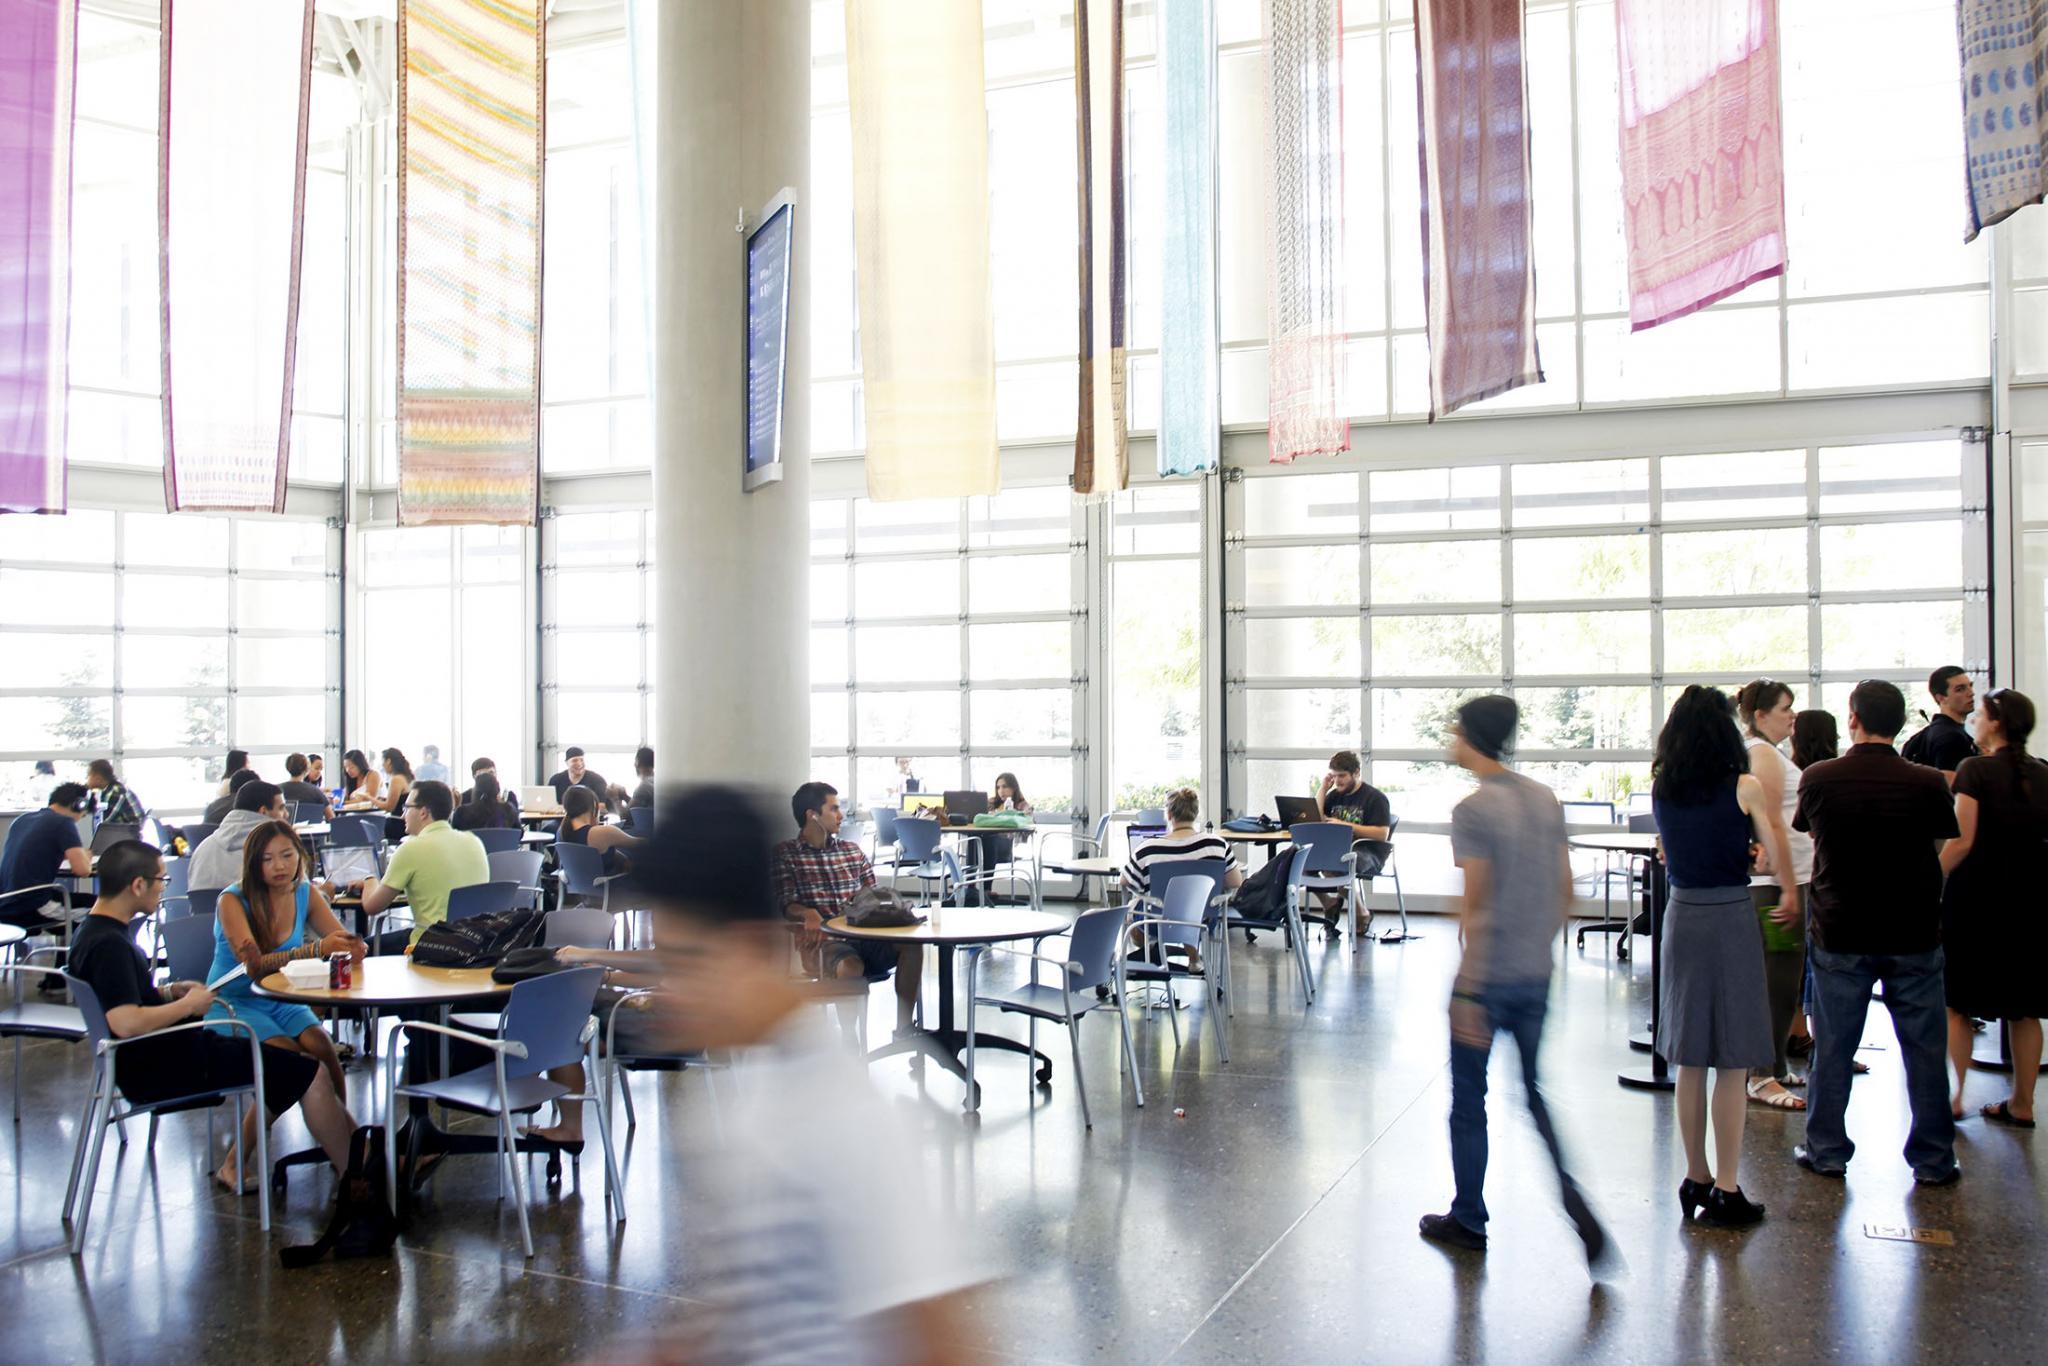 UC Merced Library University Campus Architectural Photography